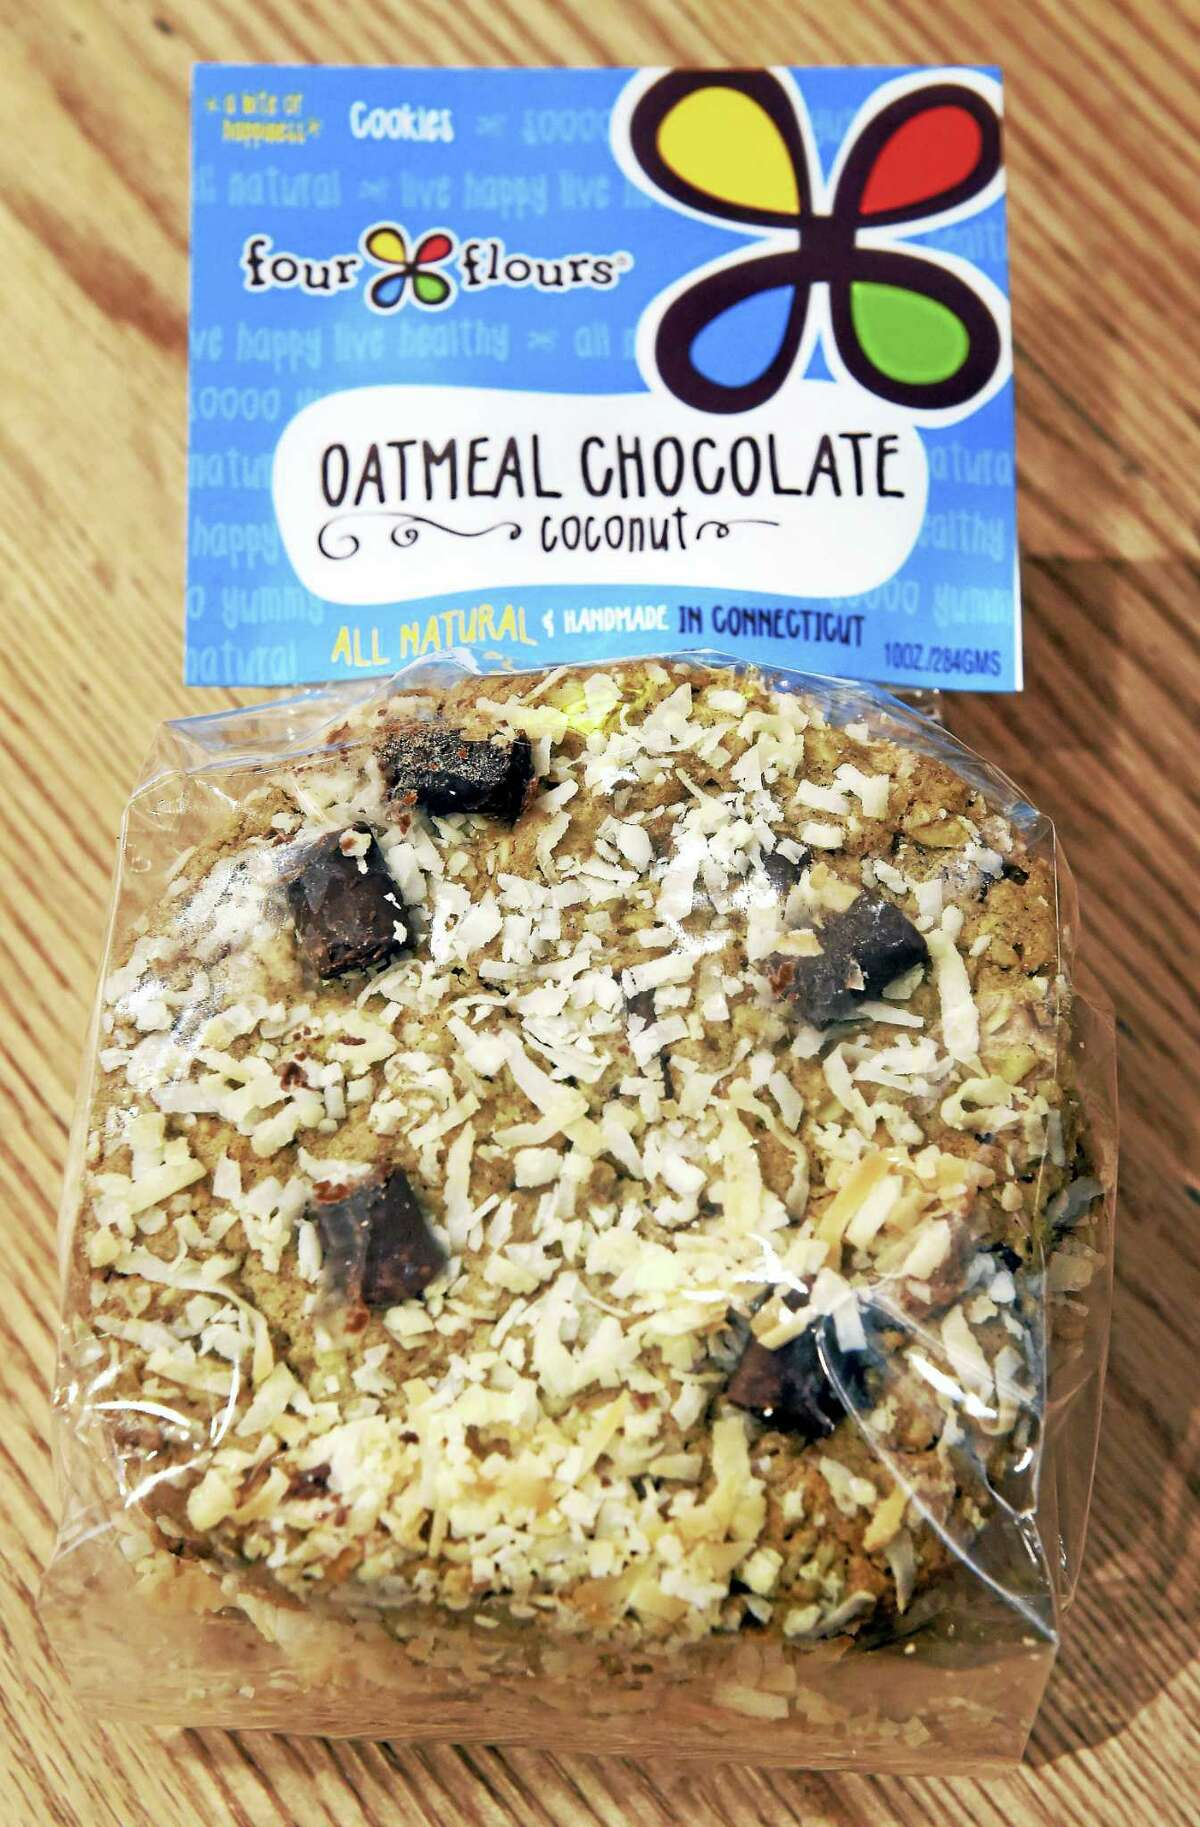 A package of oatmeal chocolate coconut cookies for sale at Four Flours Baking Company on Chapel Street in New Haven.